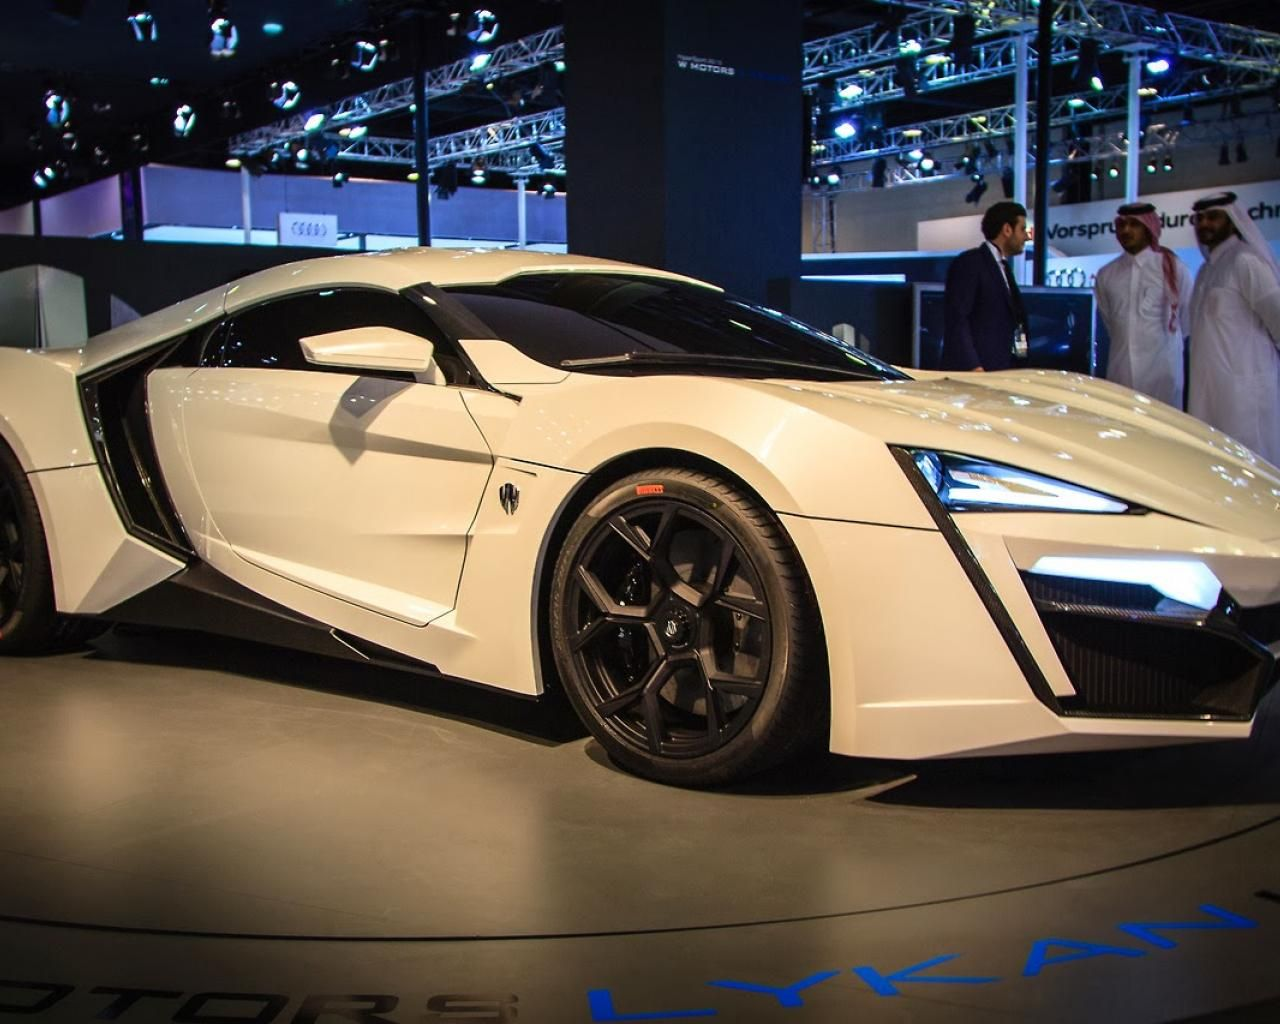 Sports Car Prices Wallpaper In 2020 Sports Car Price Sports Car Cheap Cars To Buy